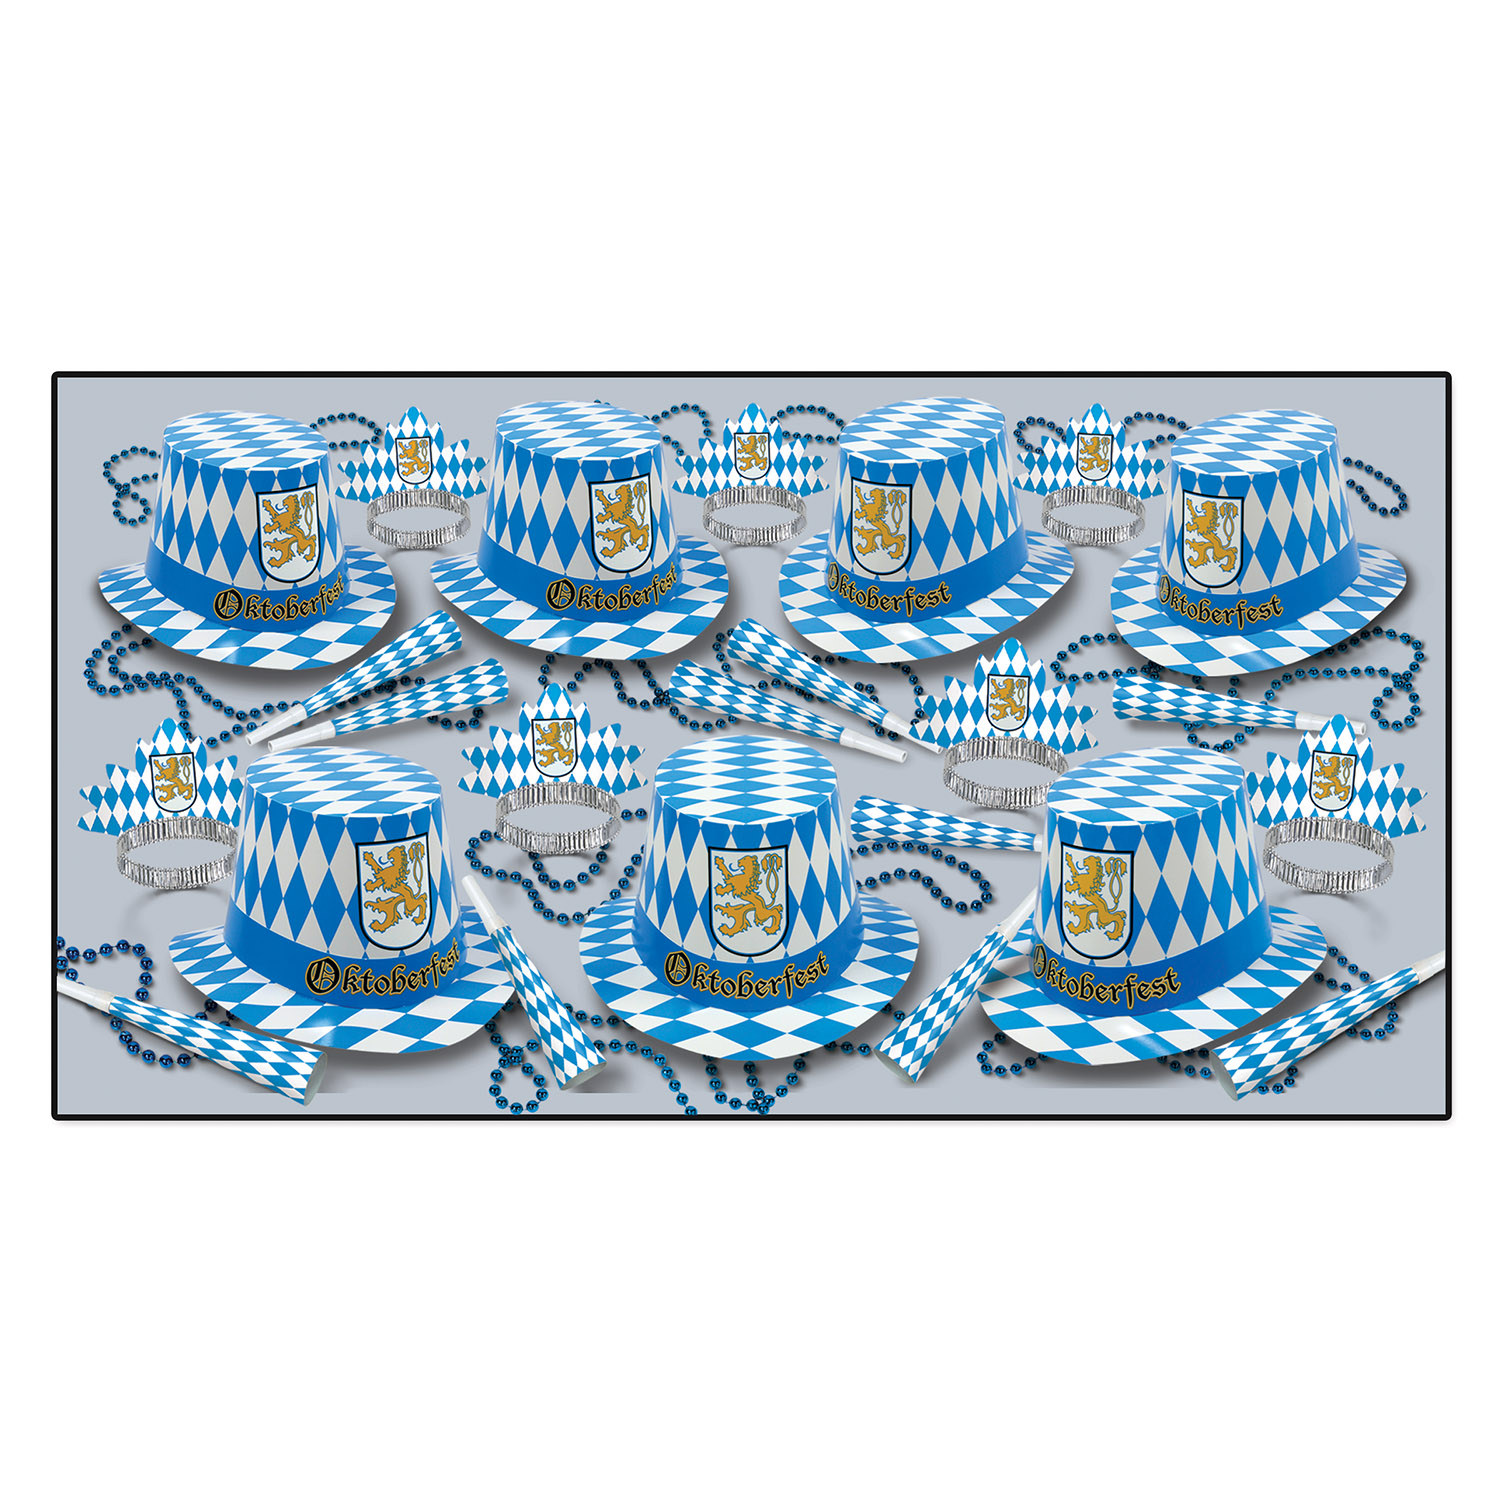 Oktoberfest Asst for 50 Oktoberfest, Party, Part kit, hats, Oktoberfest party kit